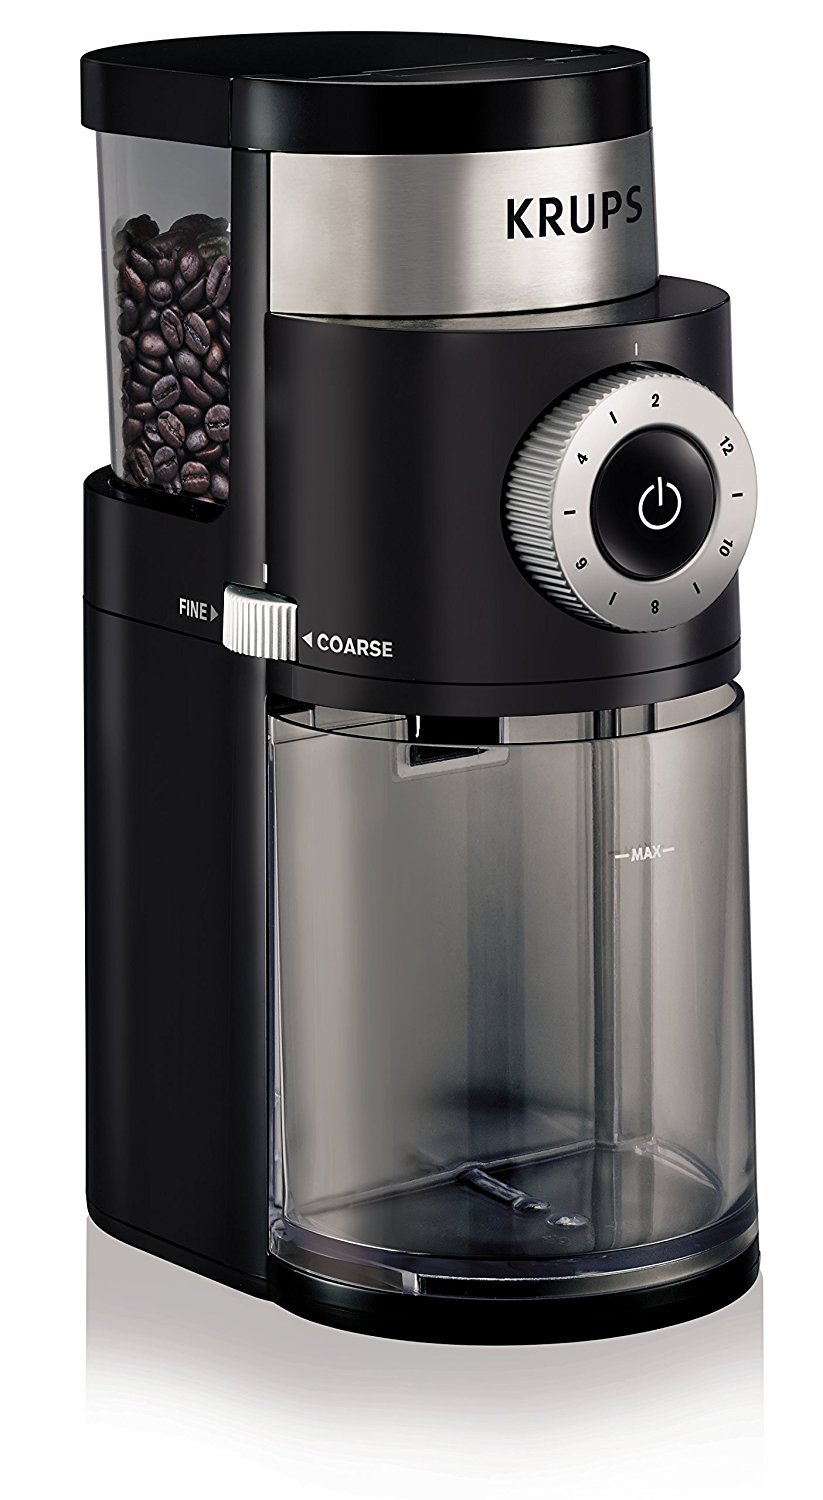 KRUPS GX5000 Professional Electric Coffee Burr Grinder with Grind Size and Cup Selection, 7-Ounce, Black (2)